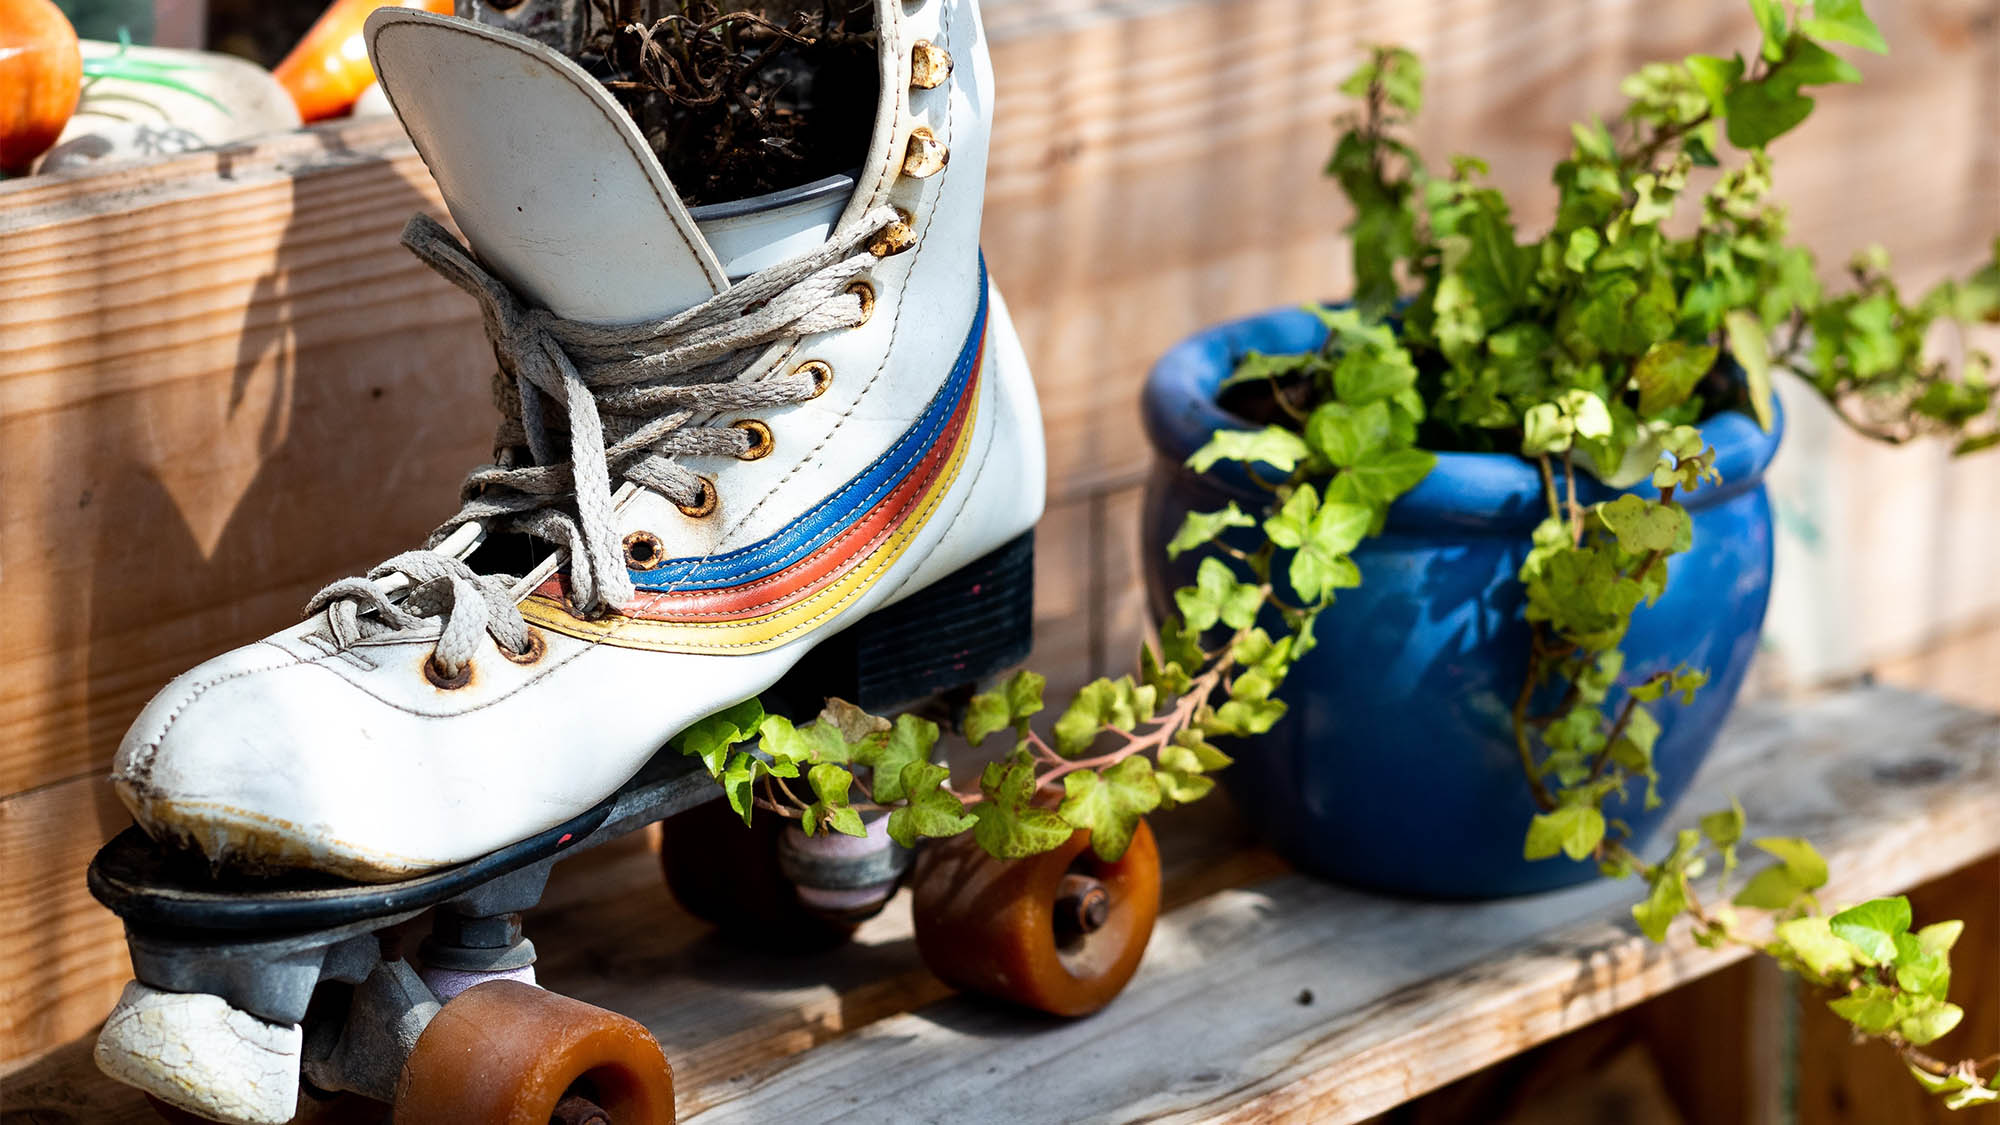 Roller Skate Planter and Plants